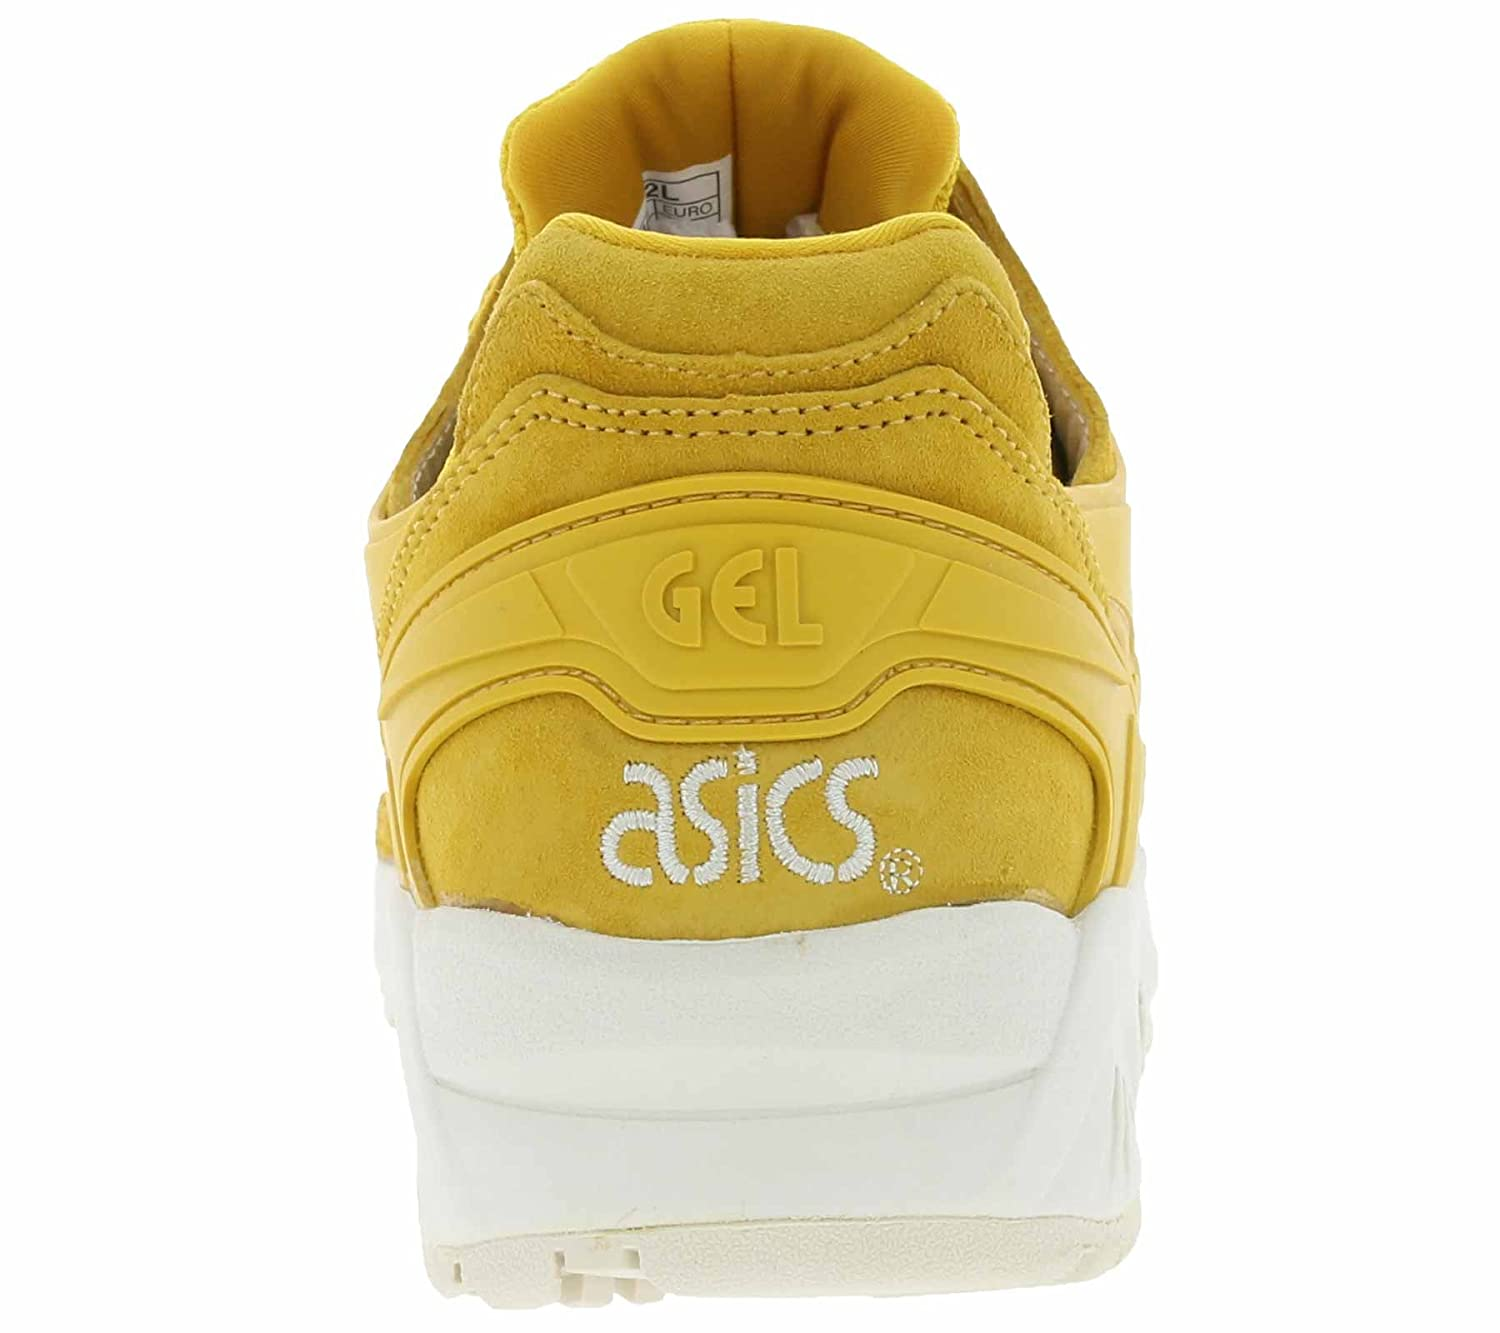 2d7cac30e38 Asics - Gel-Kayano Trainer Golden Yellow - Sneakers Men: Amazon.co.uk: Shoes  & Bags